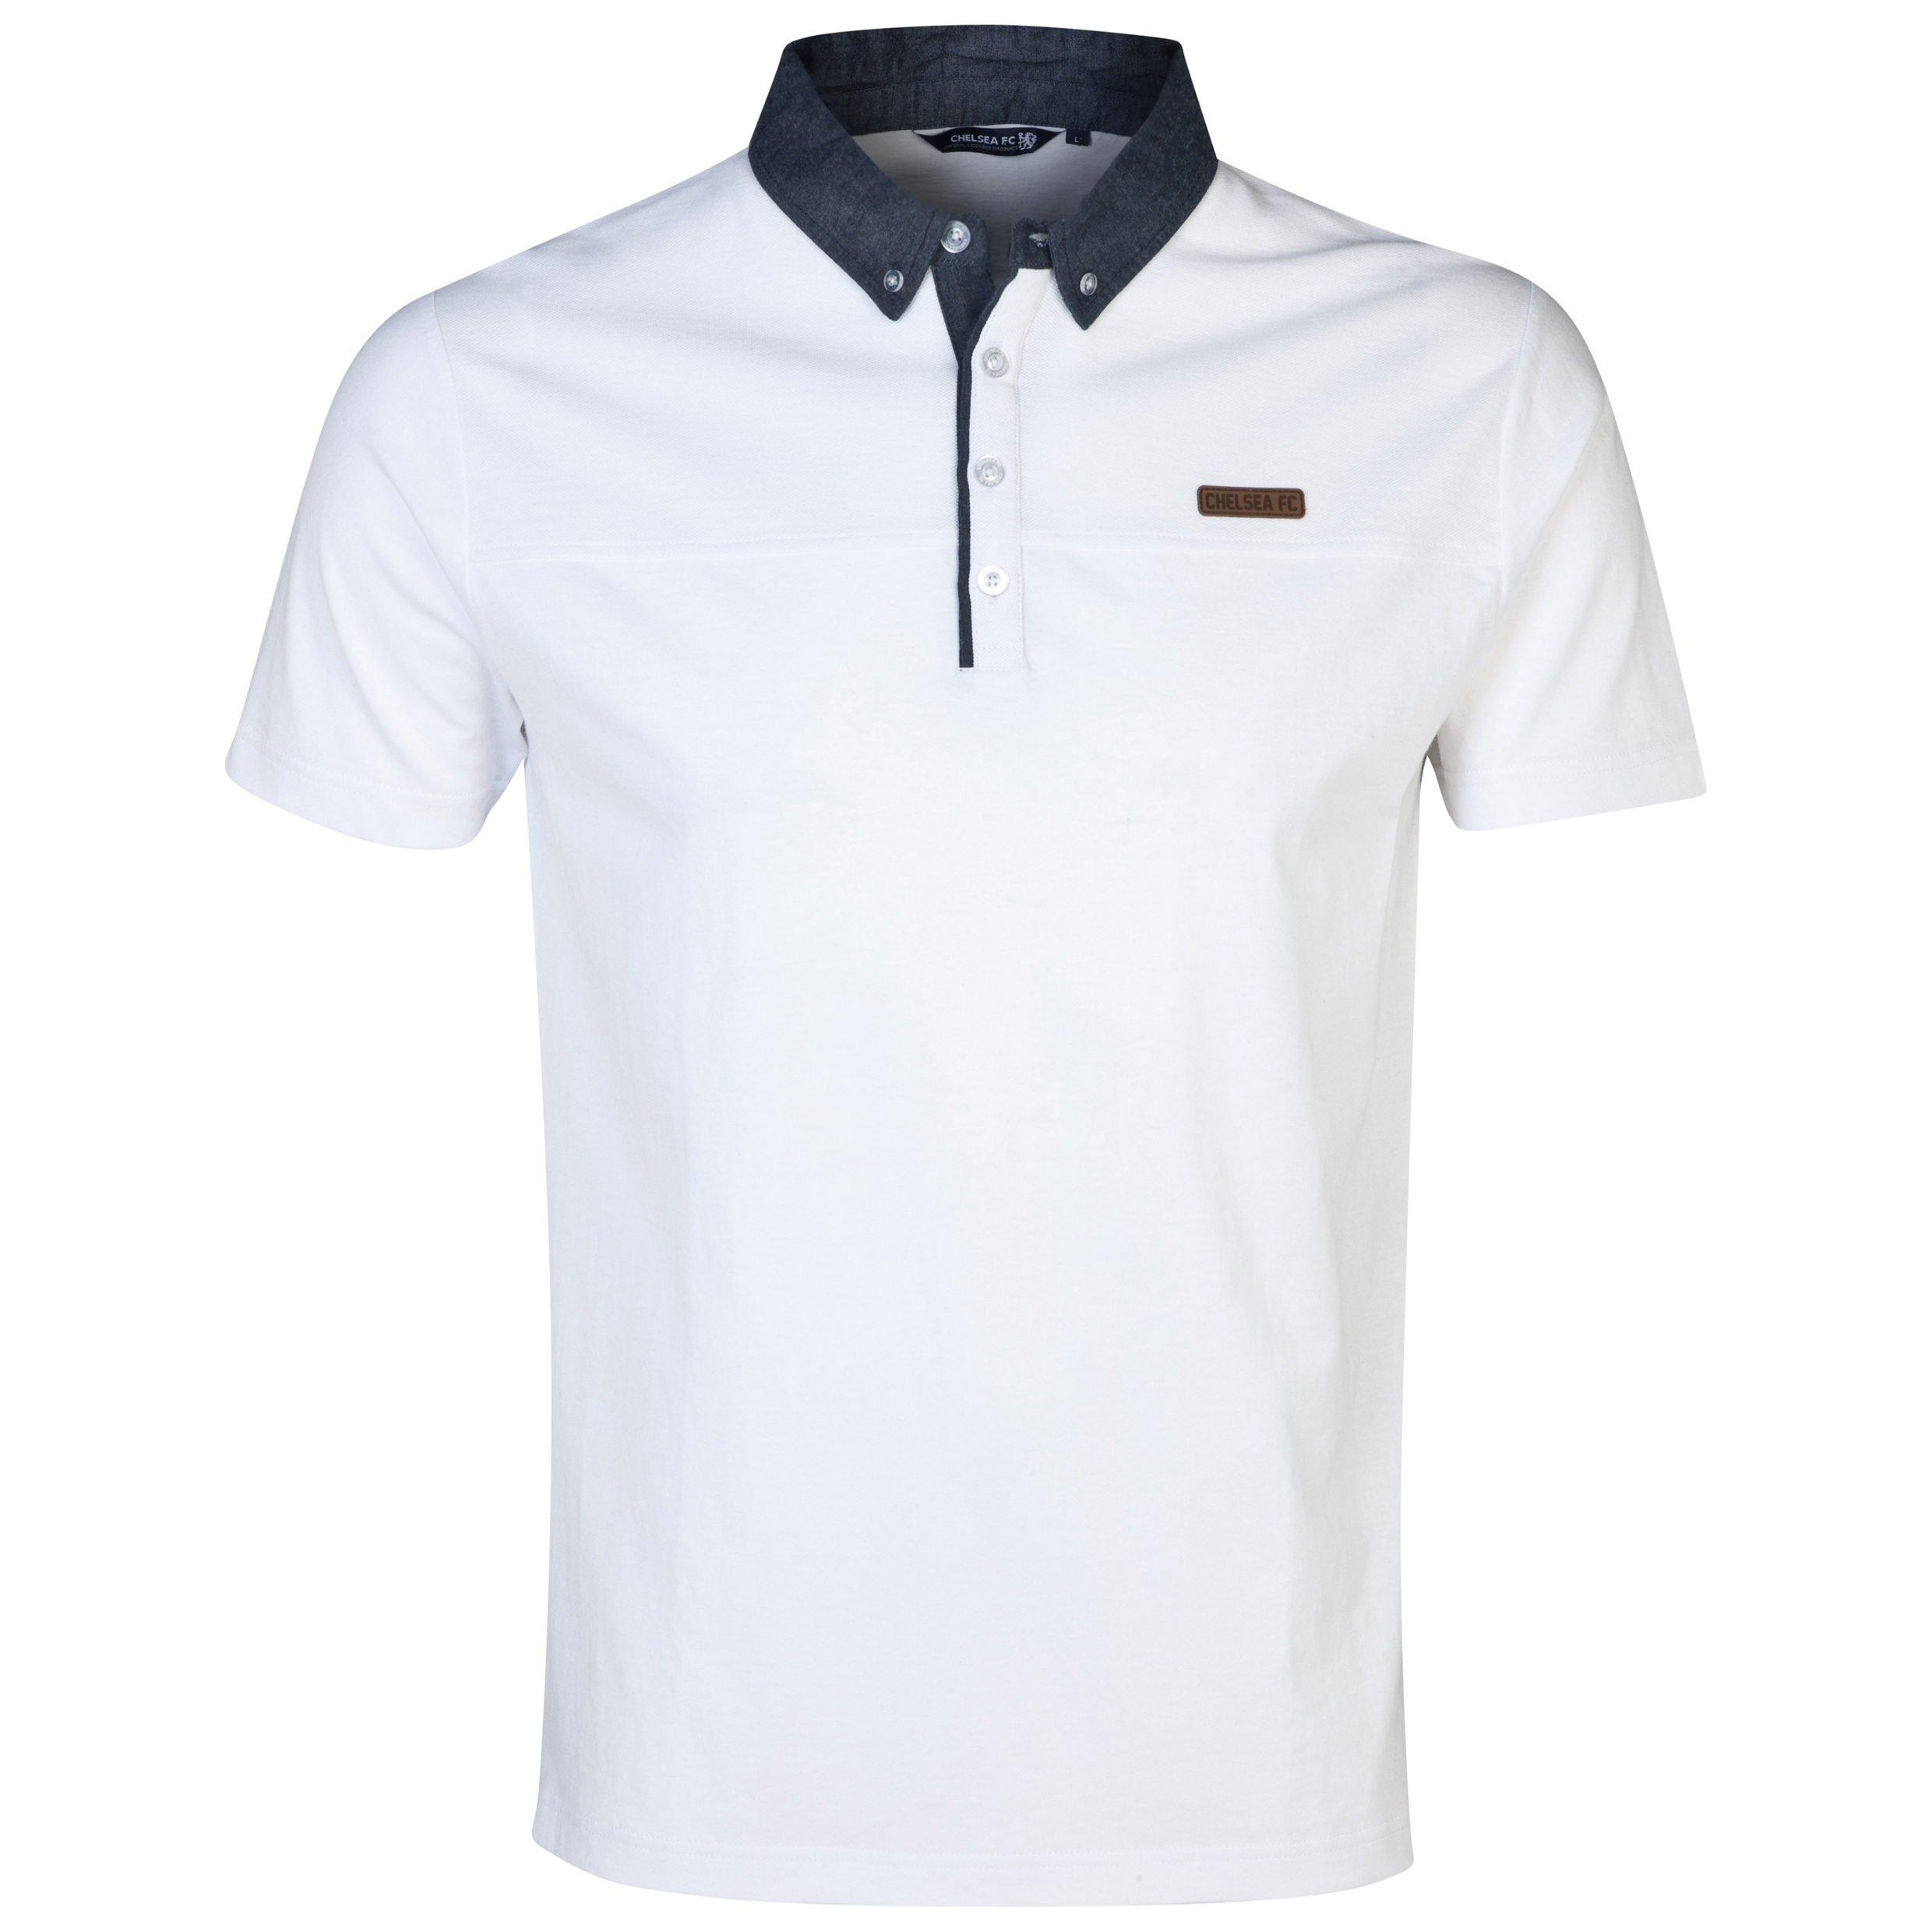 Chelsea Fashion Panel Polo - Mens White